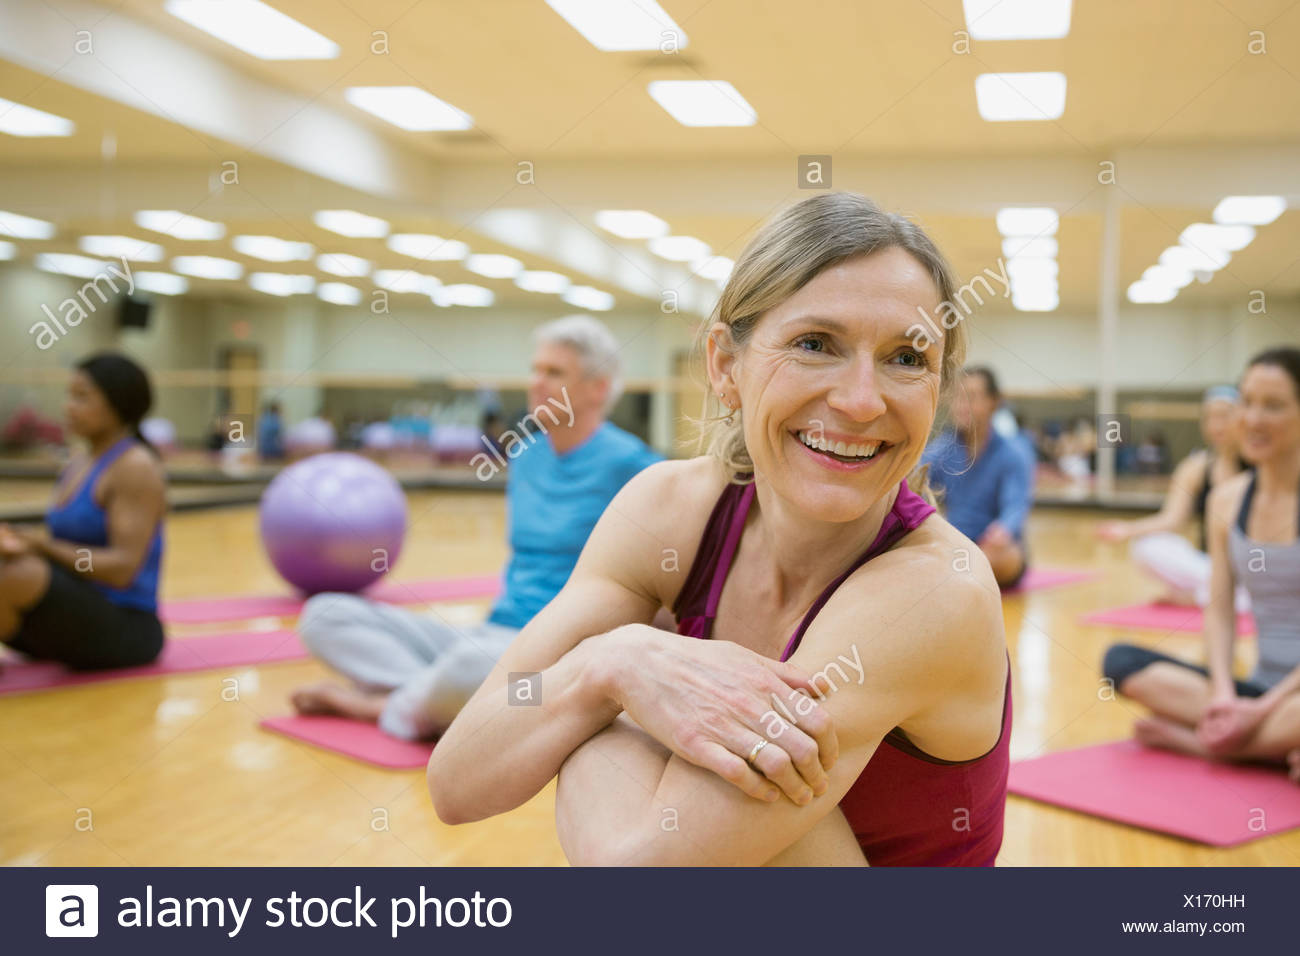 Smiling woman on yoga mat in exercise class - Stock Image